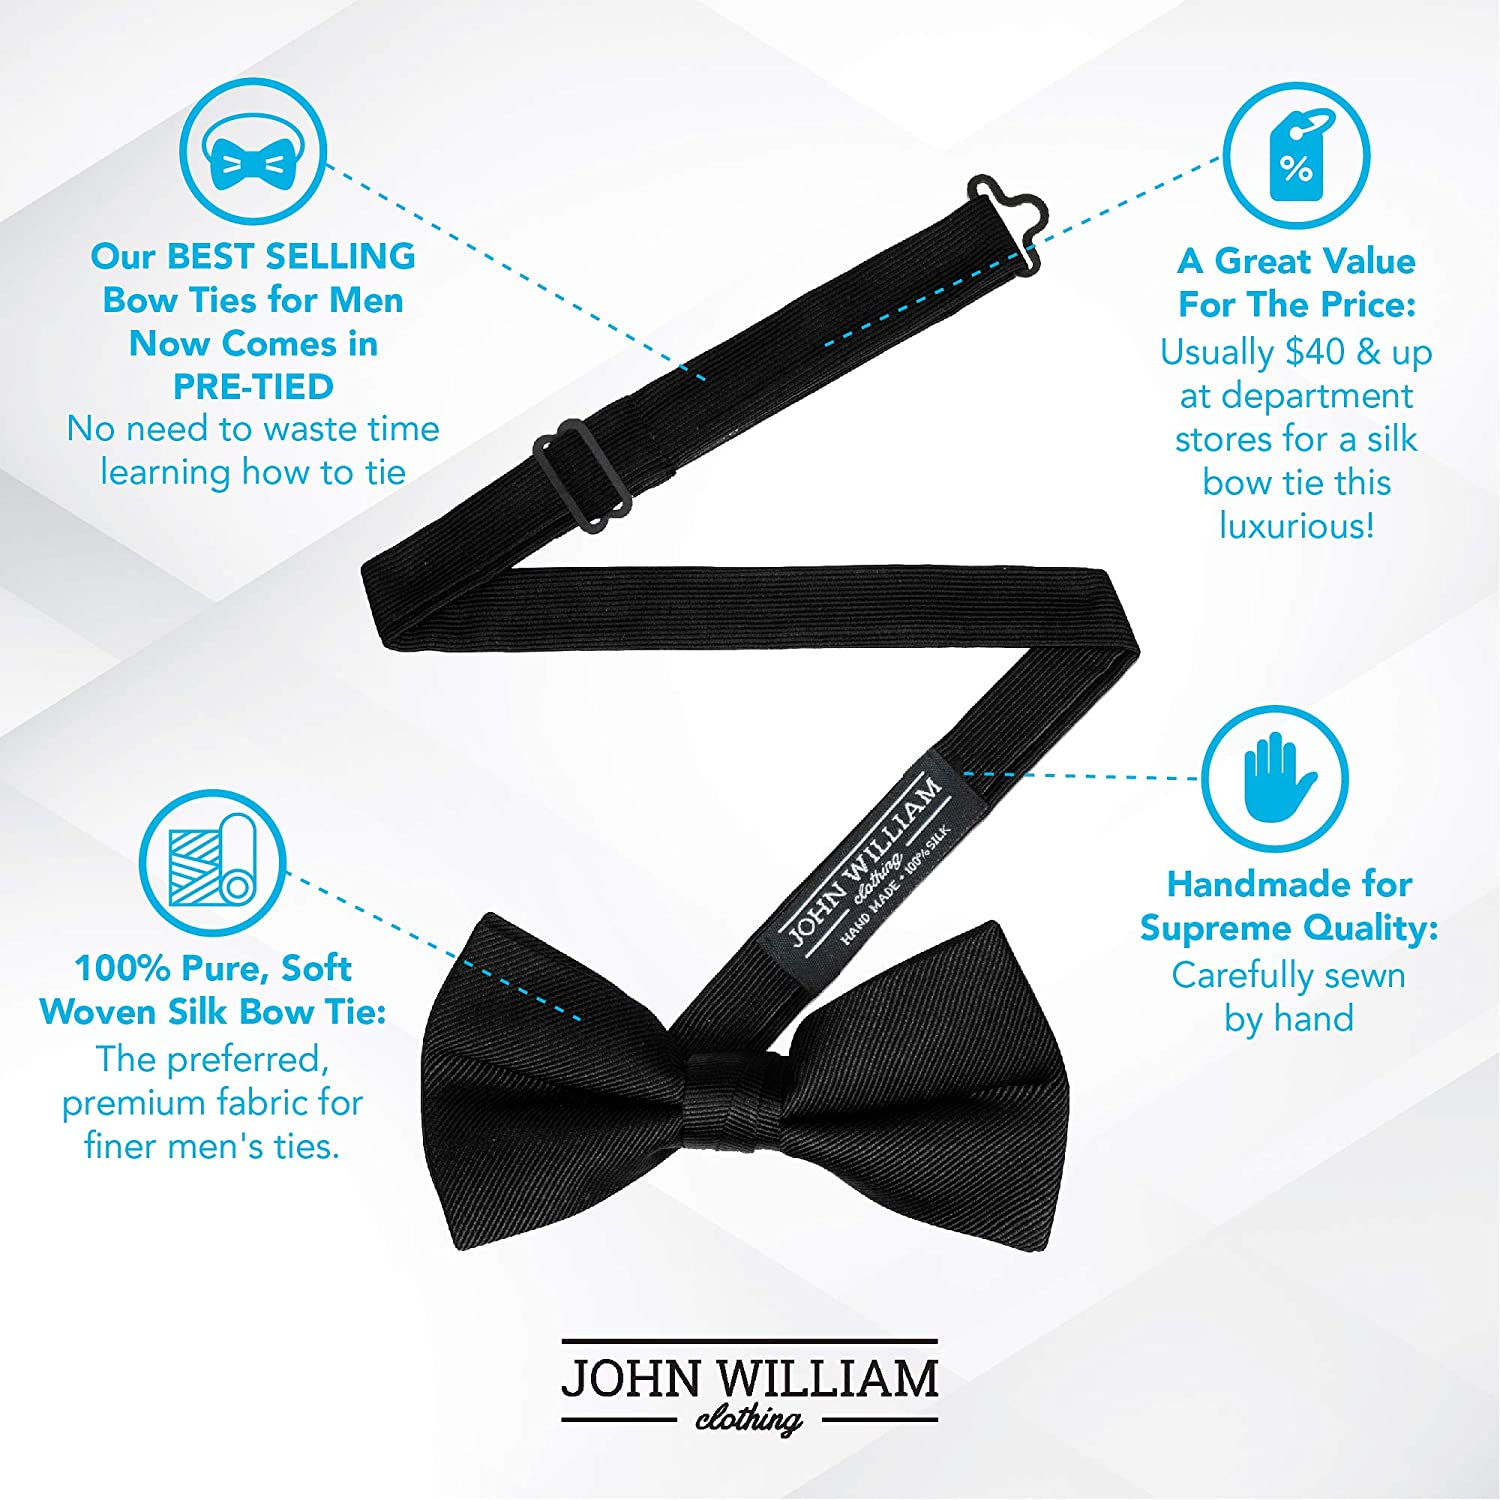 f0d62c6b4ffb 100% Silk Mens Bowtie Pre Tied Bow Ties for Men Tuxedo Bow Tie by John  William - Black at Amazon Men's Clothing store: